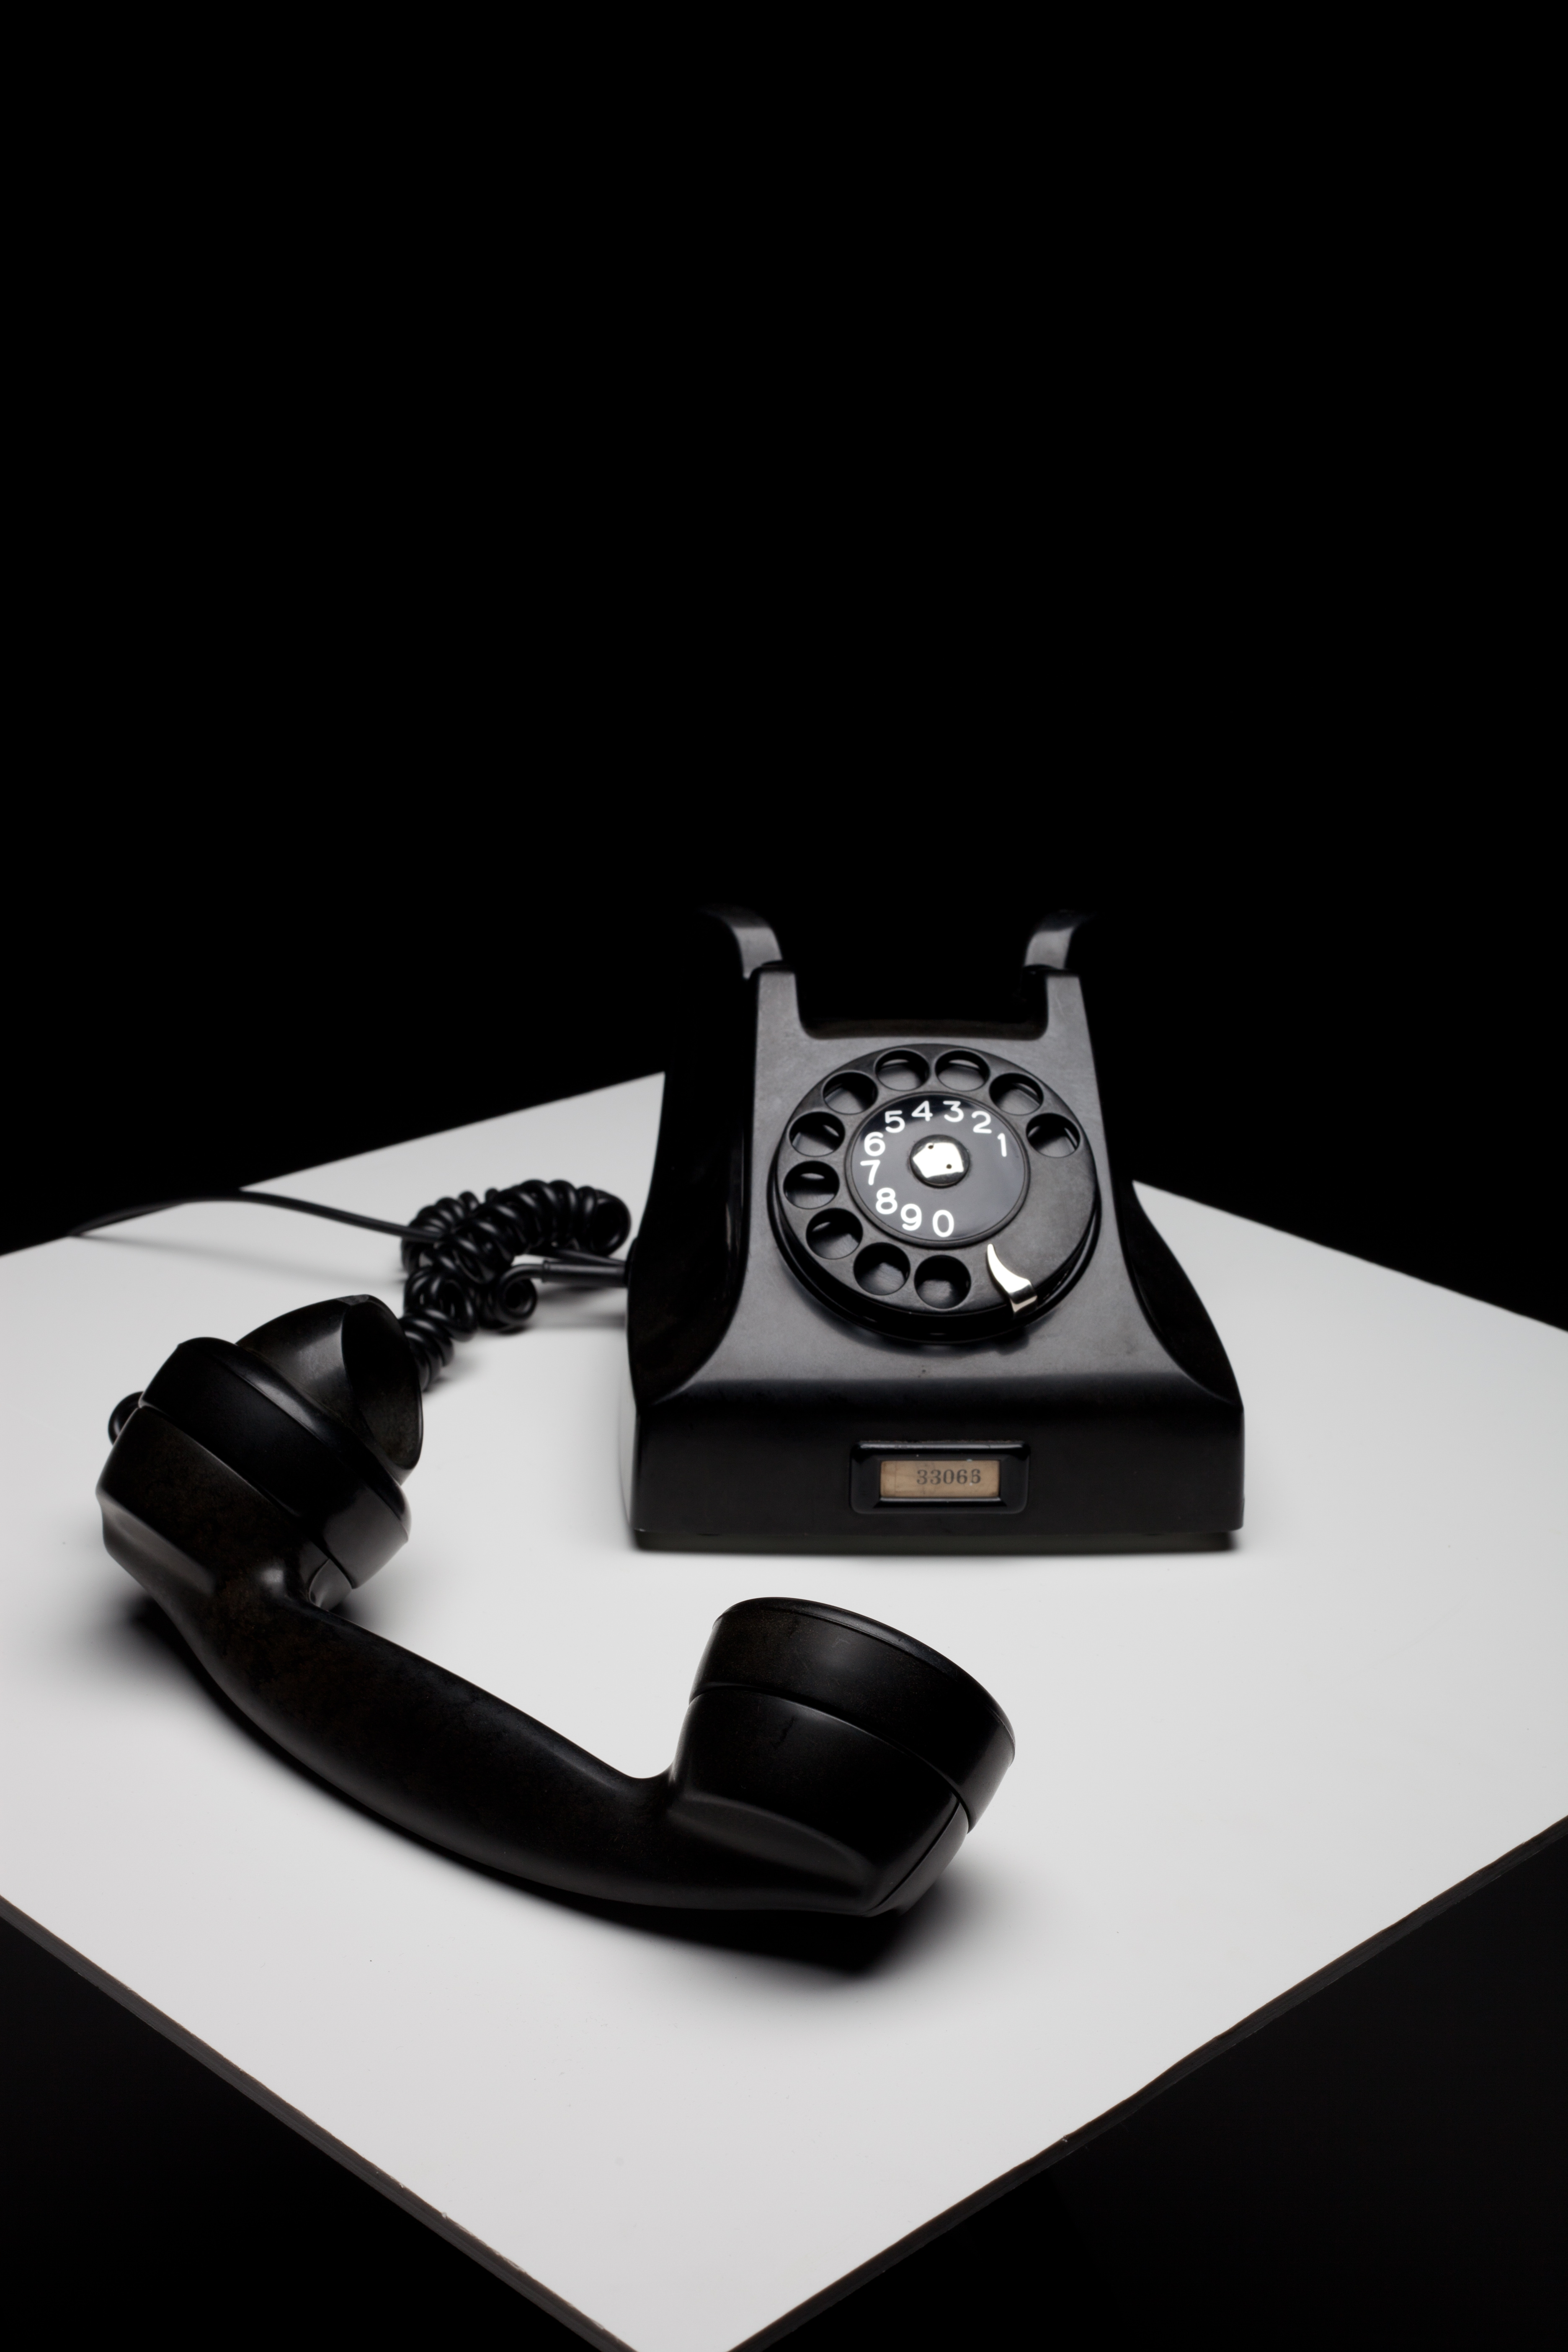 Old Telephone, Black, Call, Connect, Contact, HQ Photo